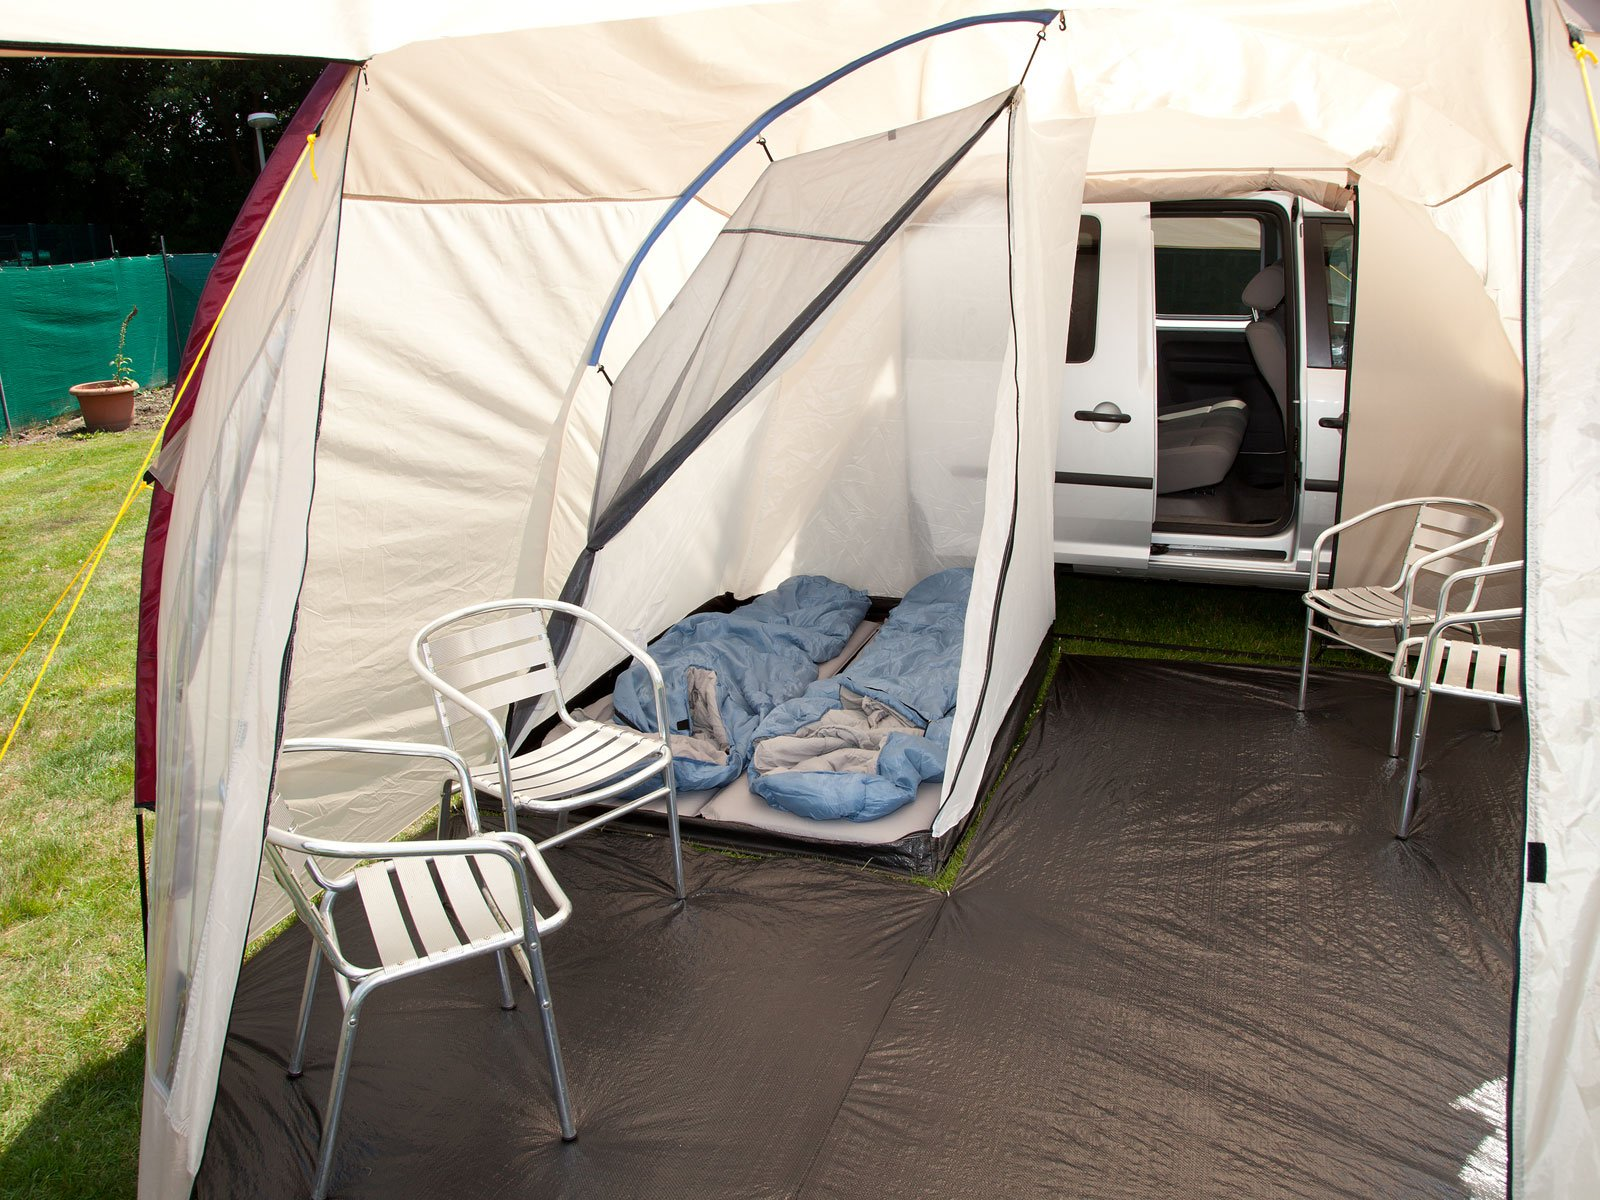 Skandika Camper Tramp Free-Standing Minivan Awning Tent with 2-Berth Sleeping Cabin and 210 cm Peak Height, Sand/Red, 2 Persons 5